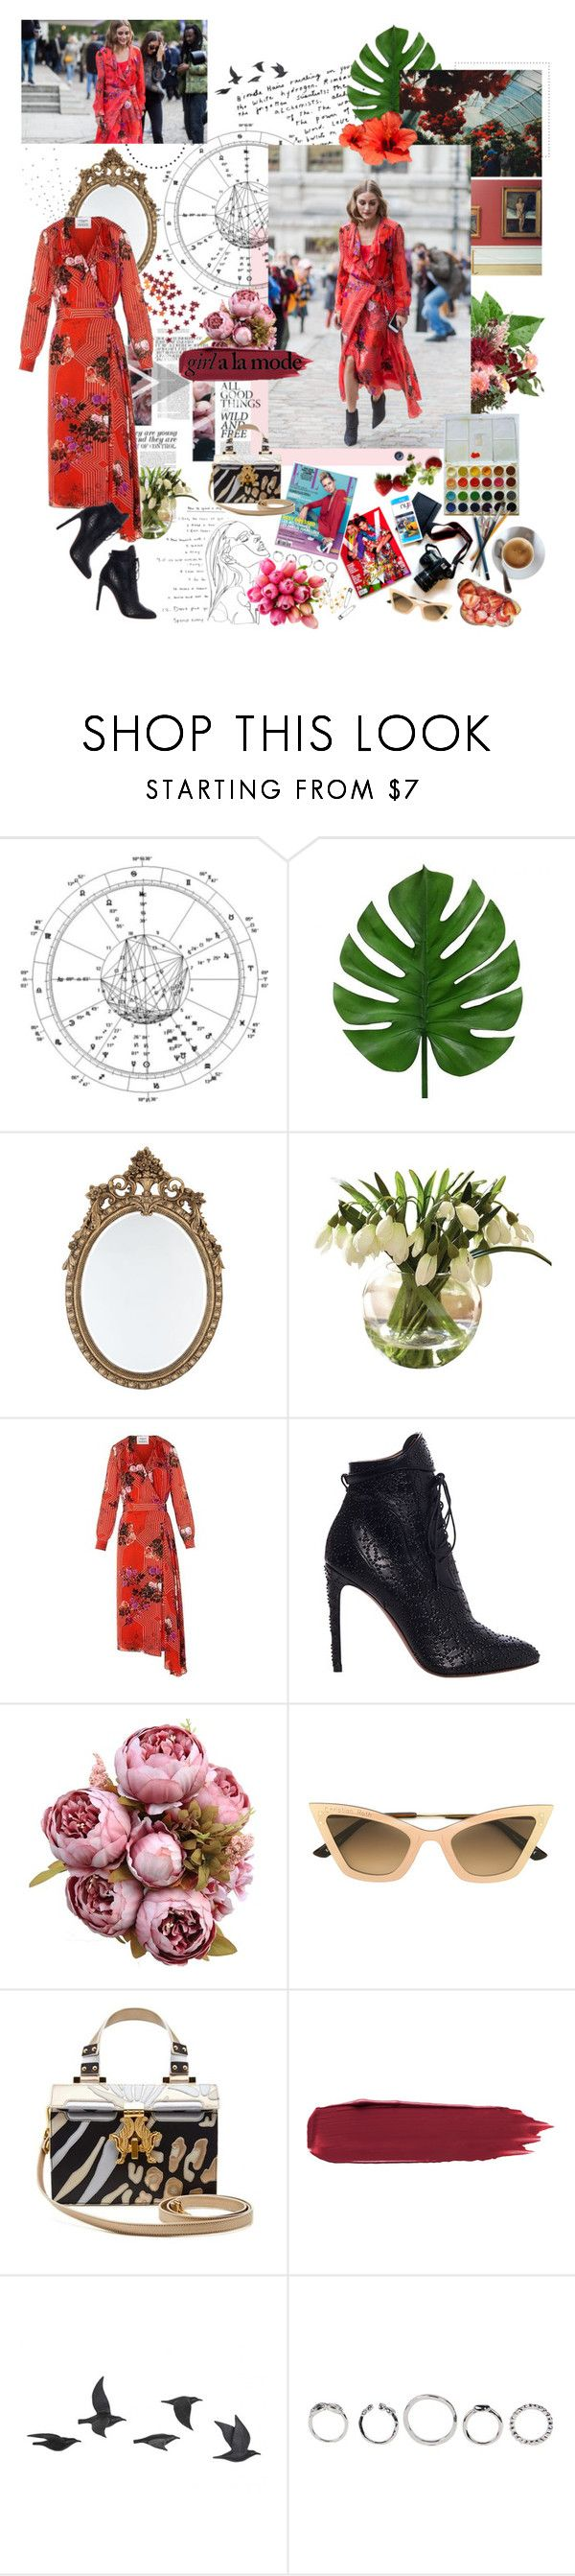 """""""i can slay my own dragon; i can dream my own dreams; my knight in shining armor is me."""" by youarebeautifulmydarling ❤ liked on Polyvore featuring Alaïa, KAROLINA, Christian Roth, Jayson Home, Hannah Marshall and Reception"""